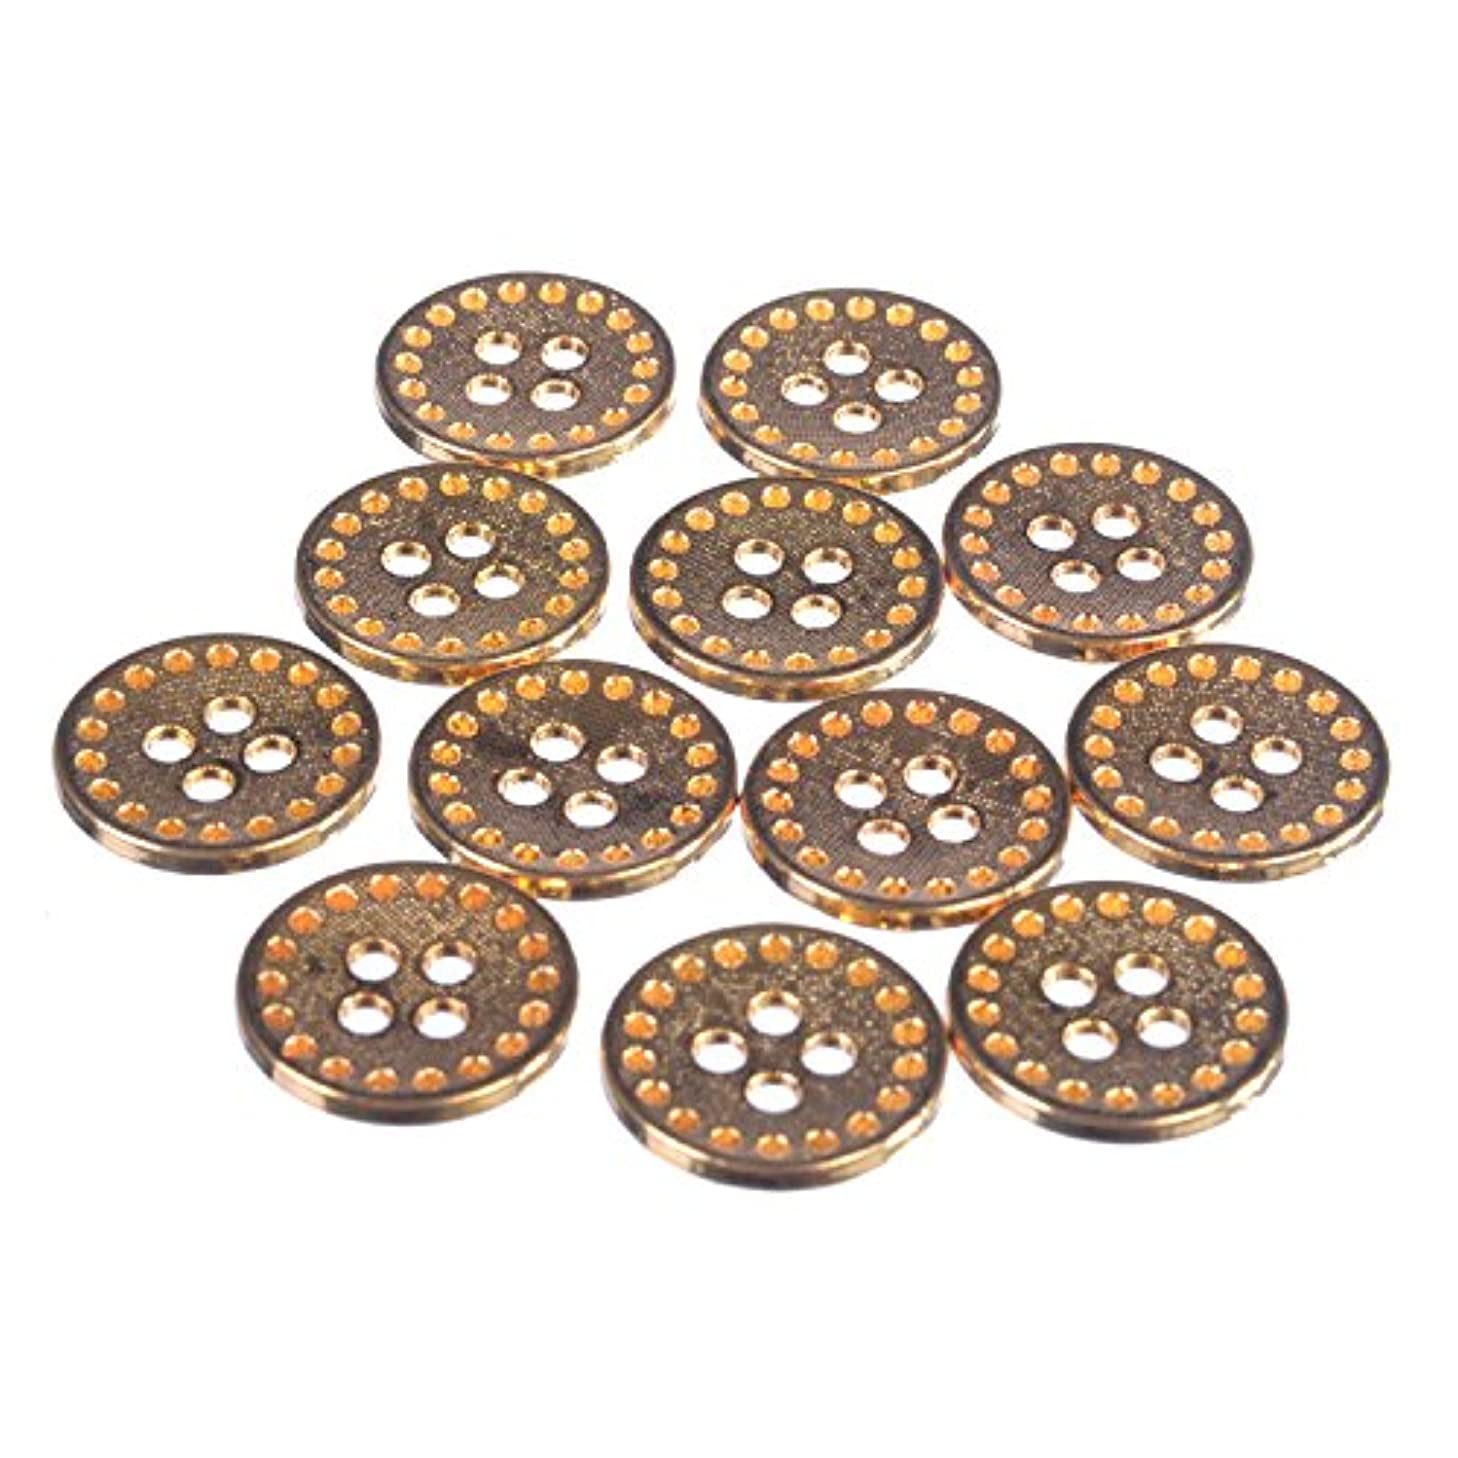 Zinc Diecasted Metal Button - 4 Hole - Dotted Texture with Perforated Edge - 24 Line - Gold